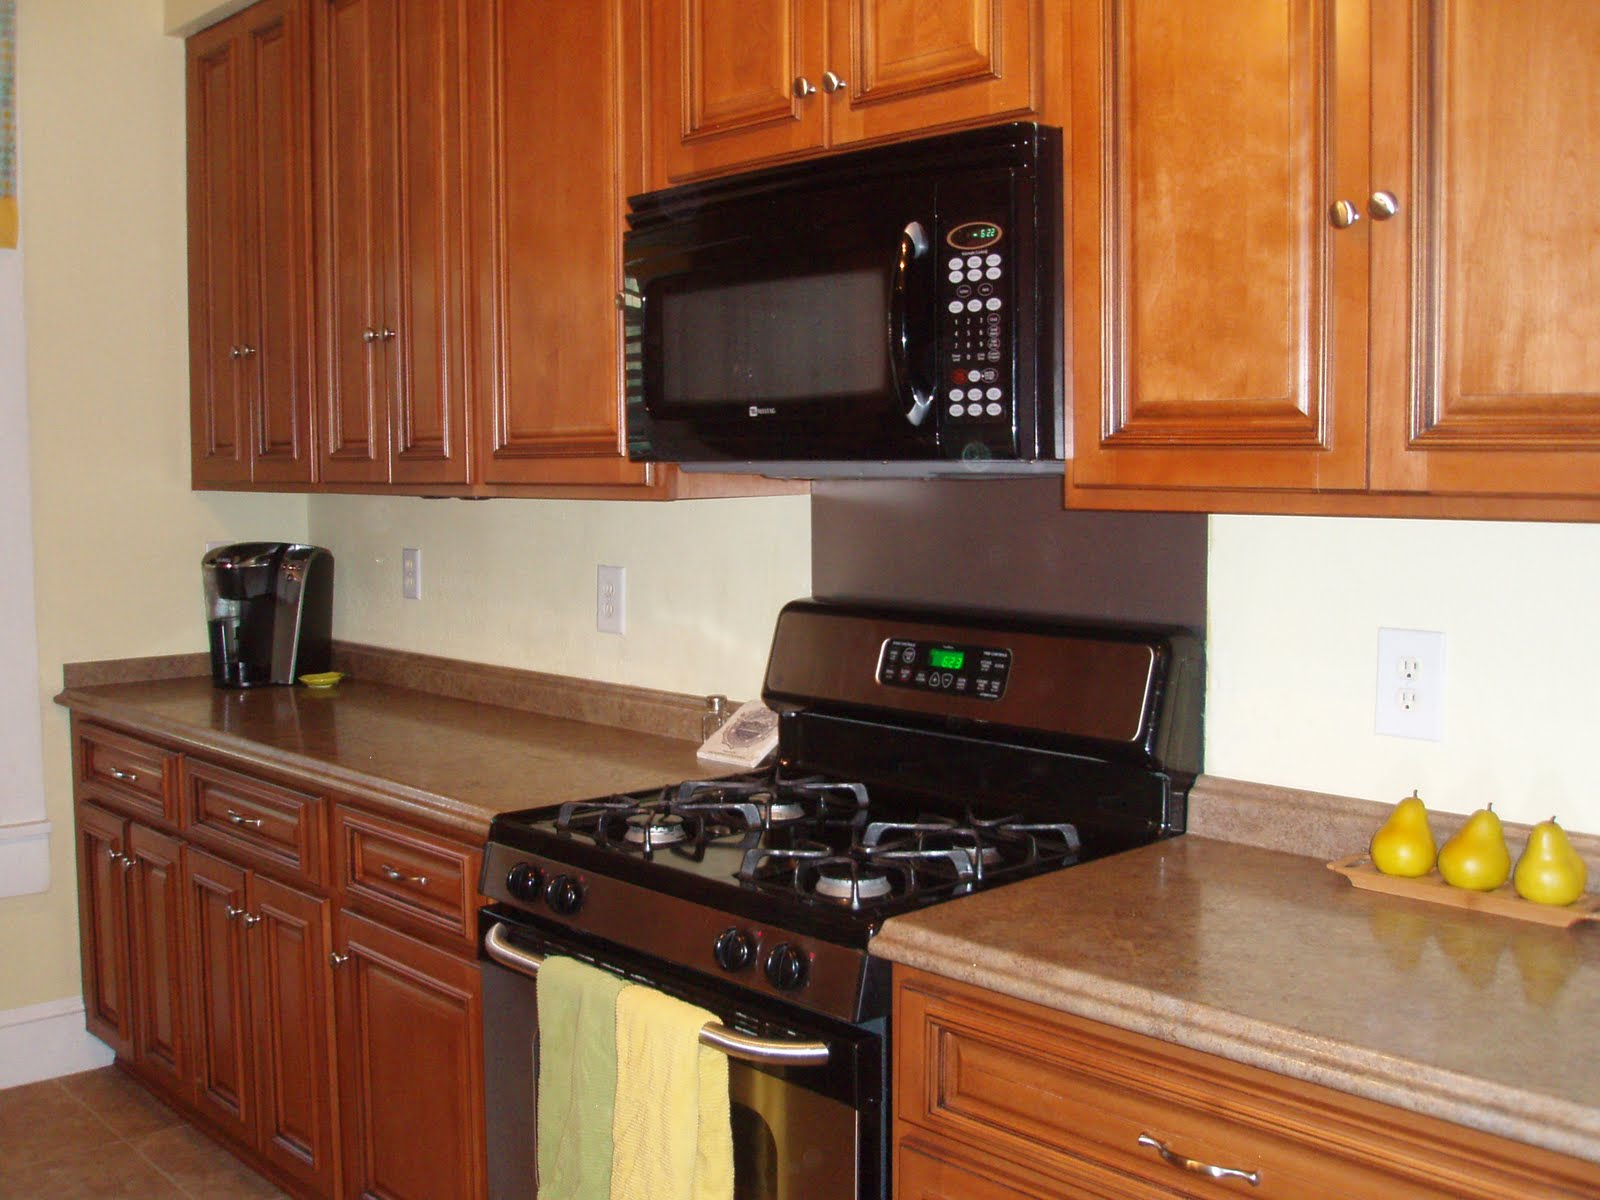 1222 east strong street kitchen updated in 2009 with new for New kitchen cabinets and countertops